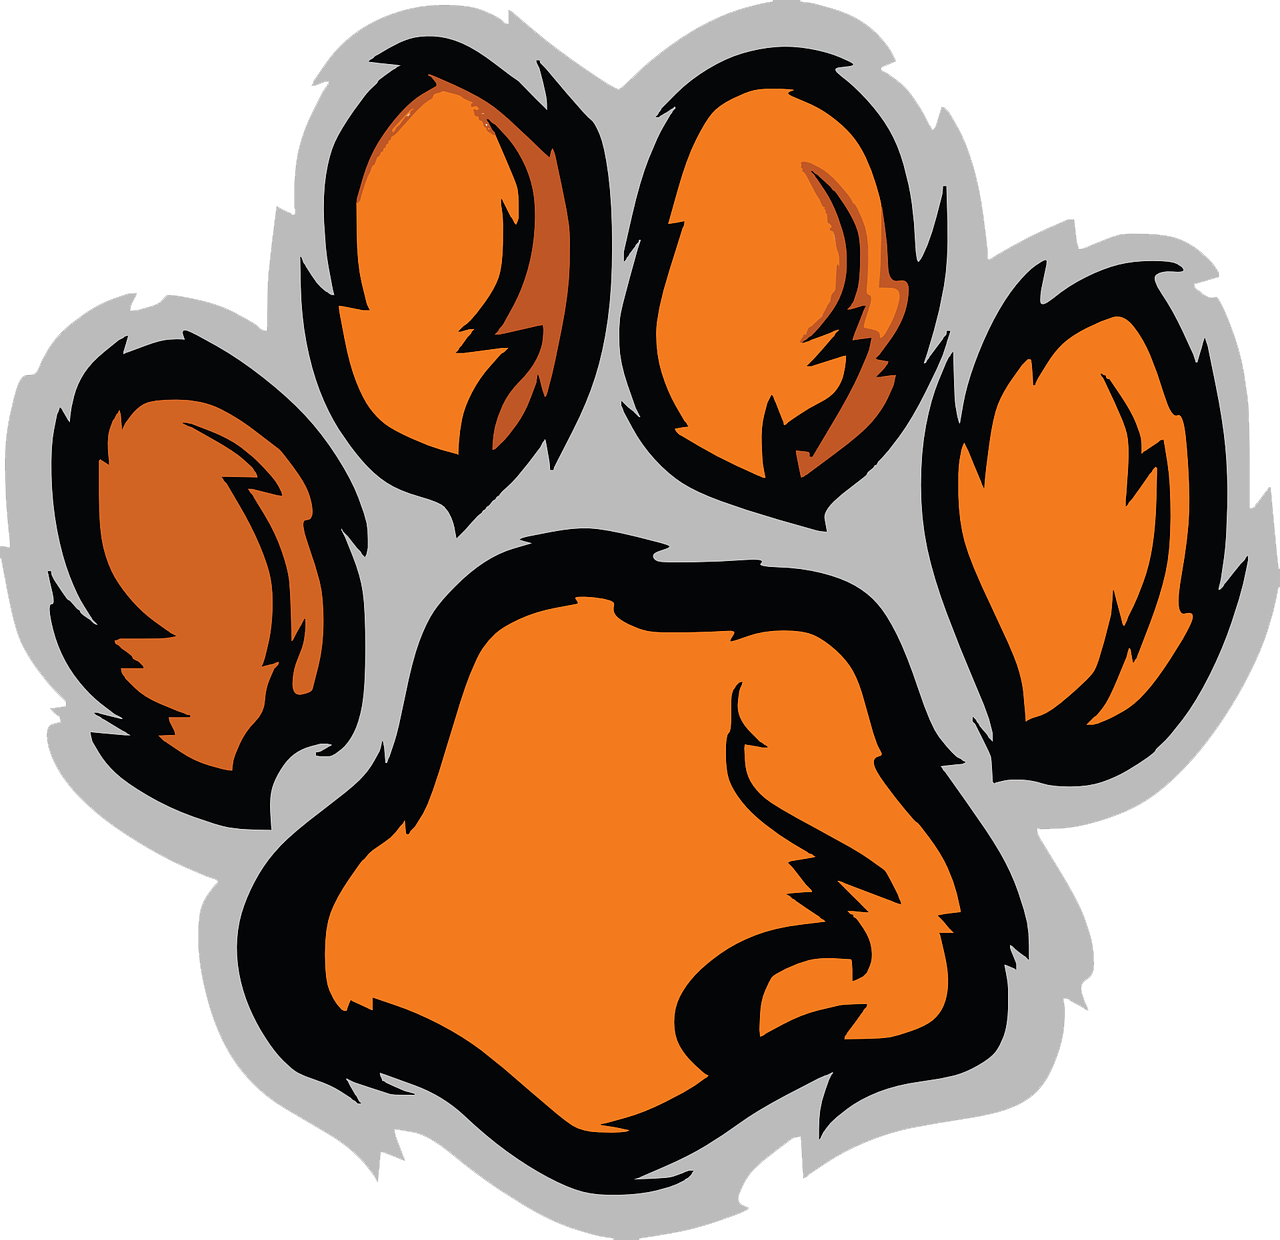 Clemson football clipart jpg stock Tiger Paw Clemson University Clip art - Cute cat claws 1280*1240 ... jpg stock